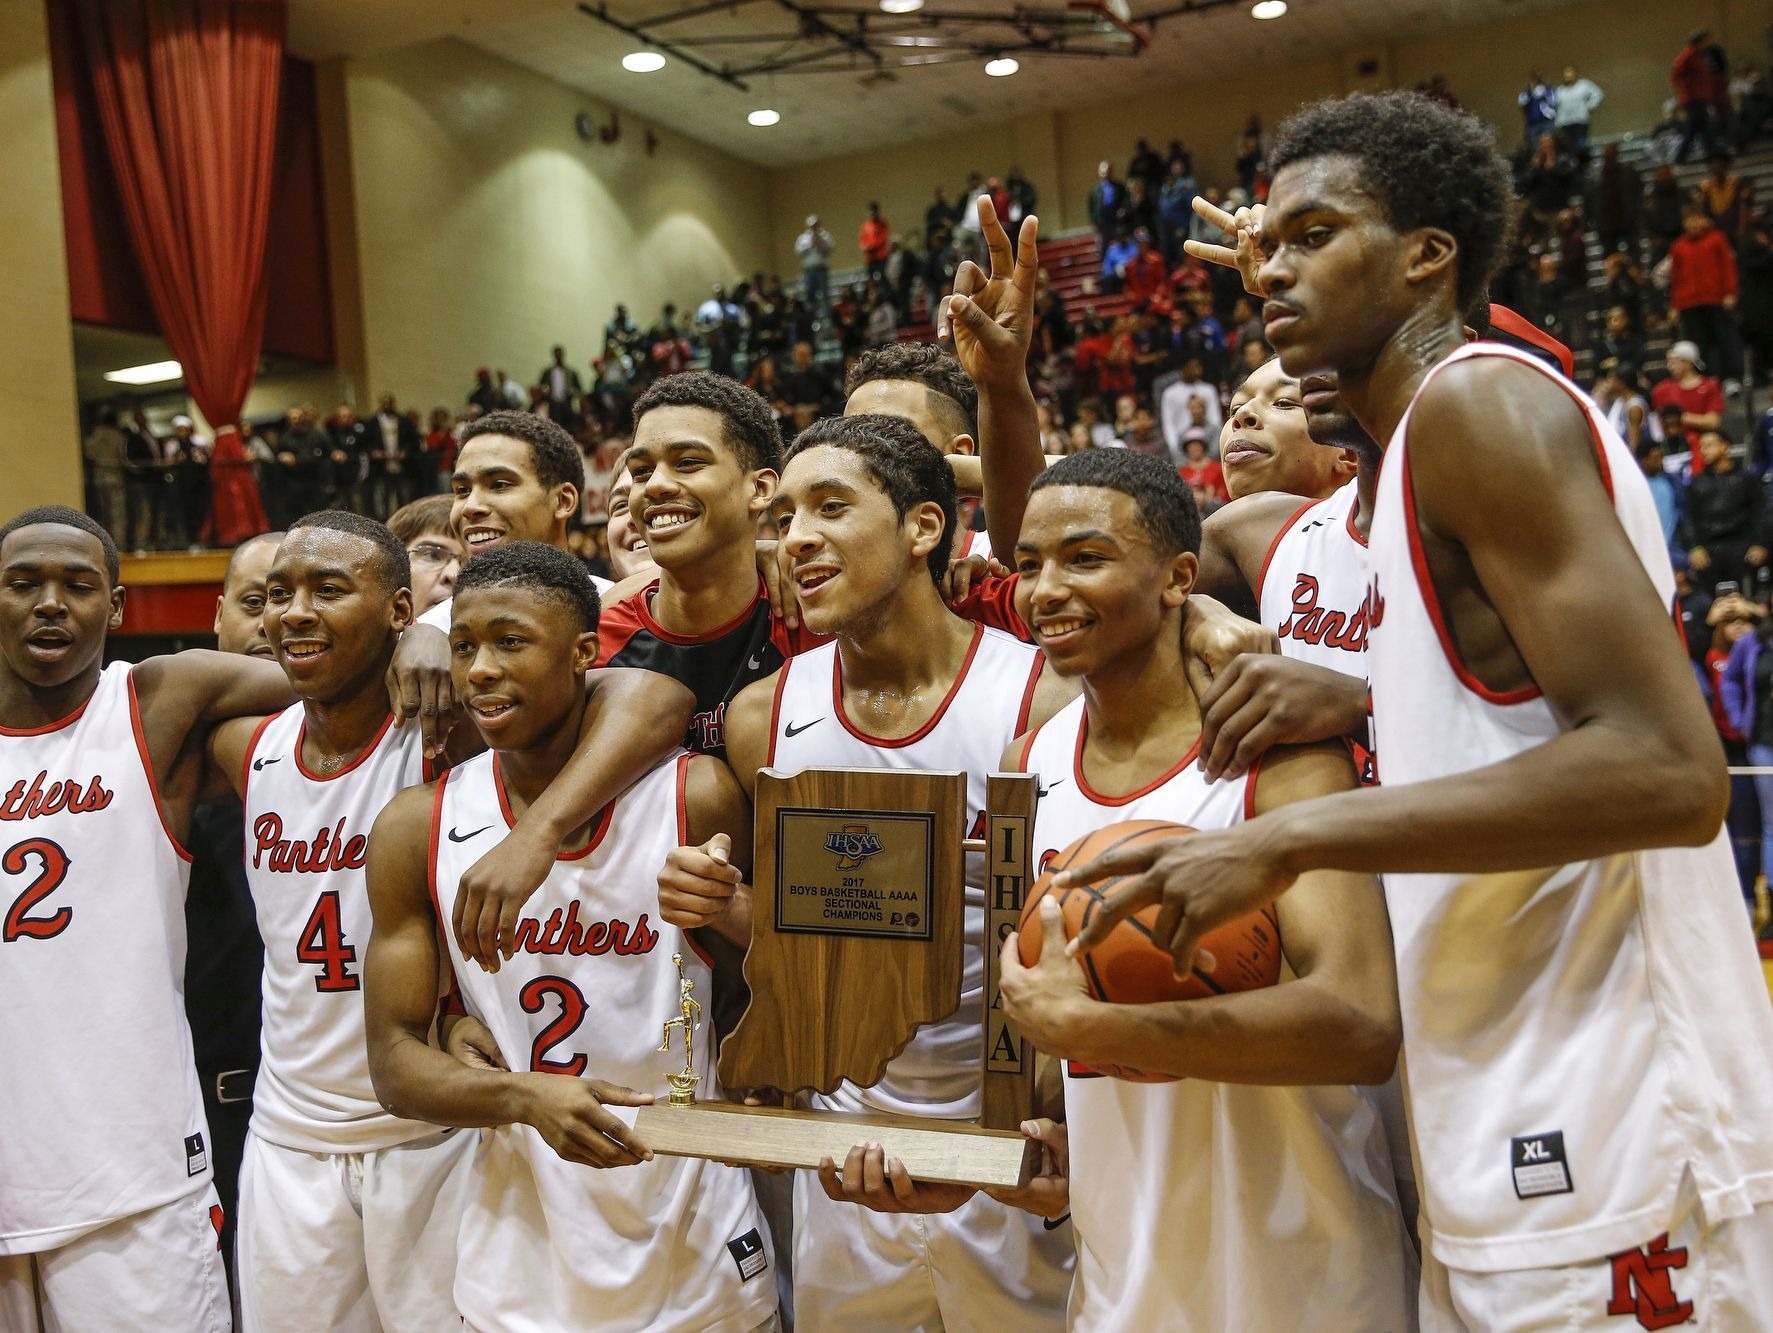 The North Central Panthers pose for a photo after defeating the Lawrence North Wildcats in their IHSAA 4A sectional final basketball game at North Central High School on Saturday, March 4, 2017.